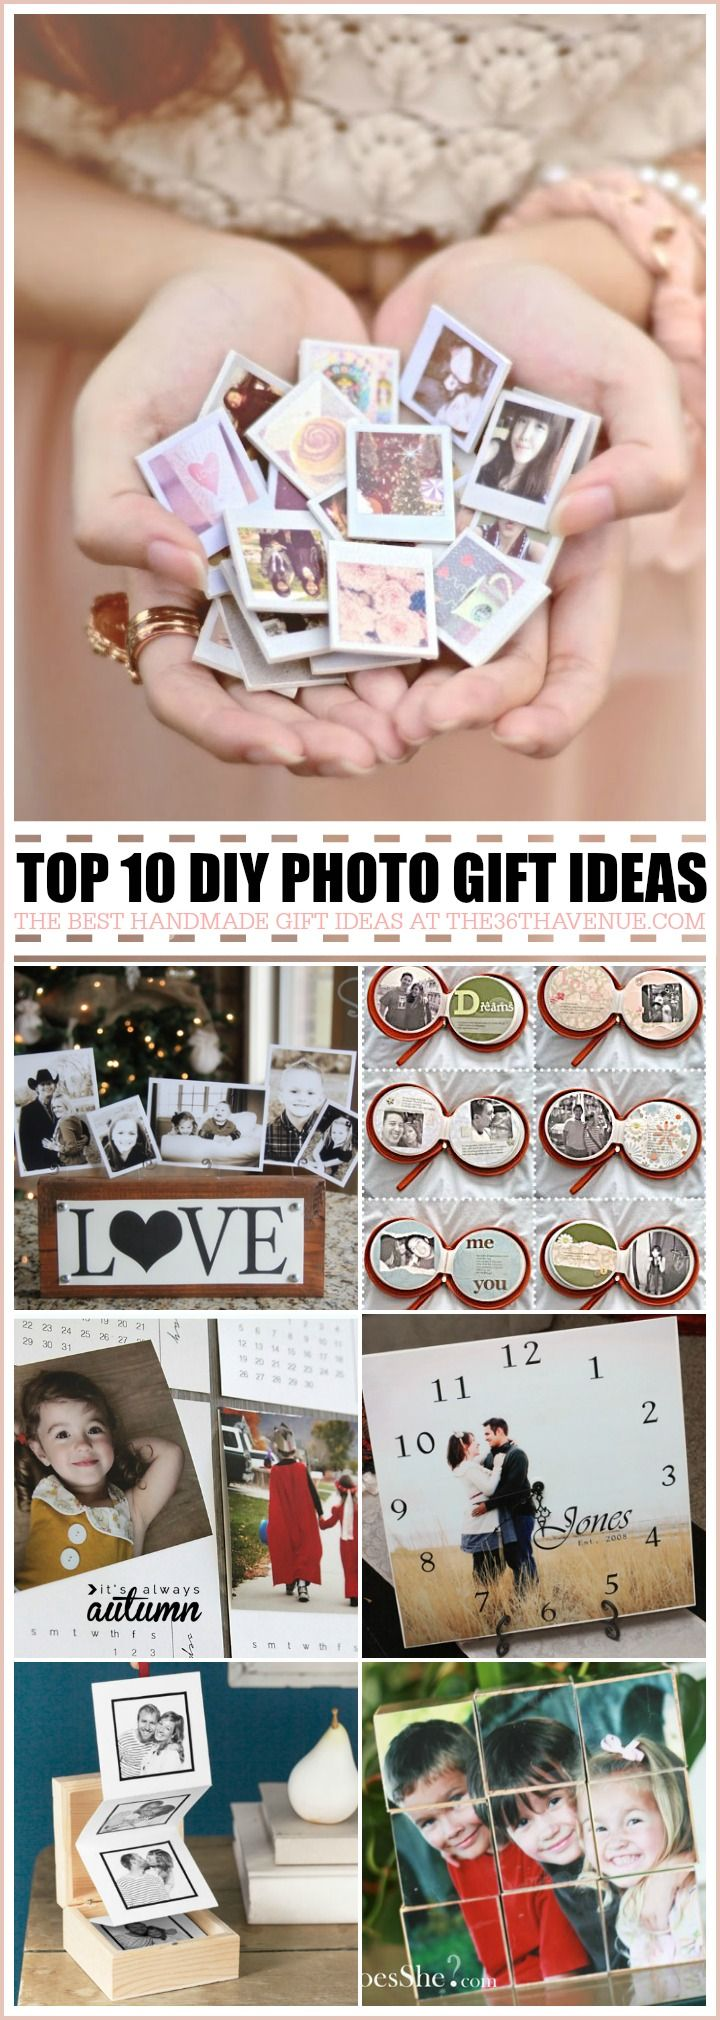 Top 10 Handmade Gifts using photos - These gifts ideas are perfect for Christmas gifts, birthday presents, Mother's Day Gifts and Valentines & Anniversary Gifts... These handmade gift ideas are super easy to make, adorable, and affordable... MUST RE-PIN!